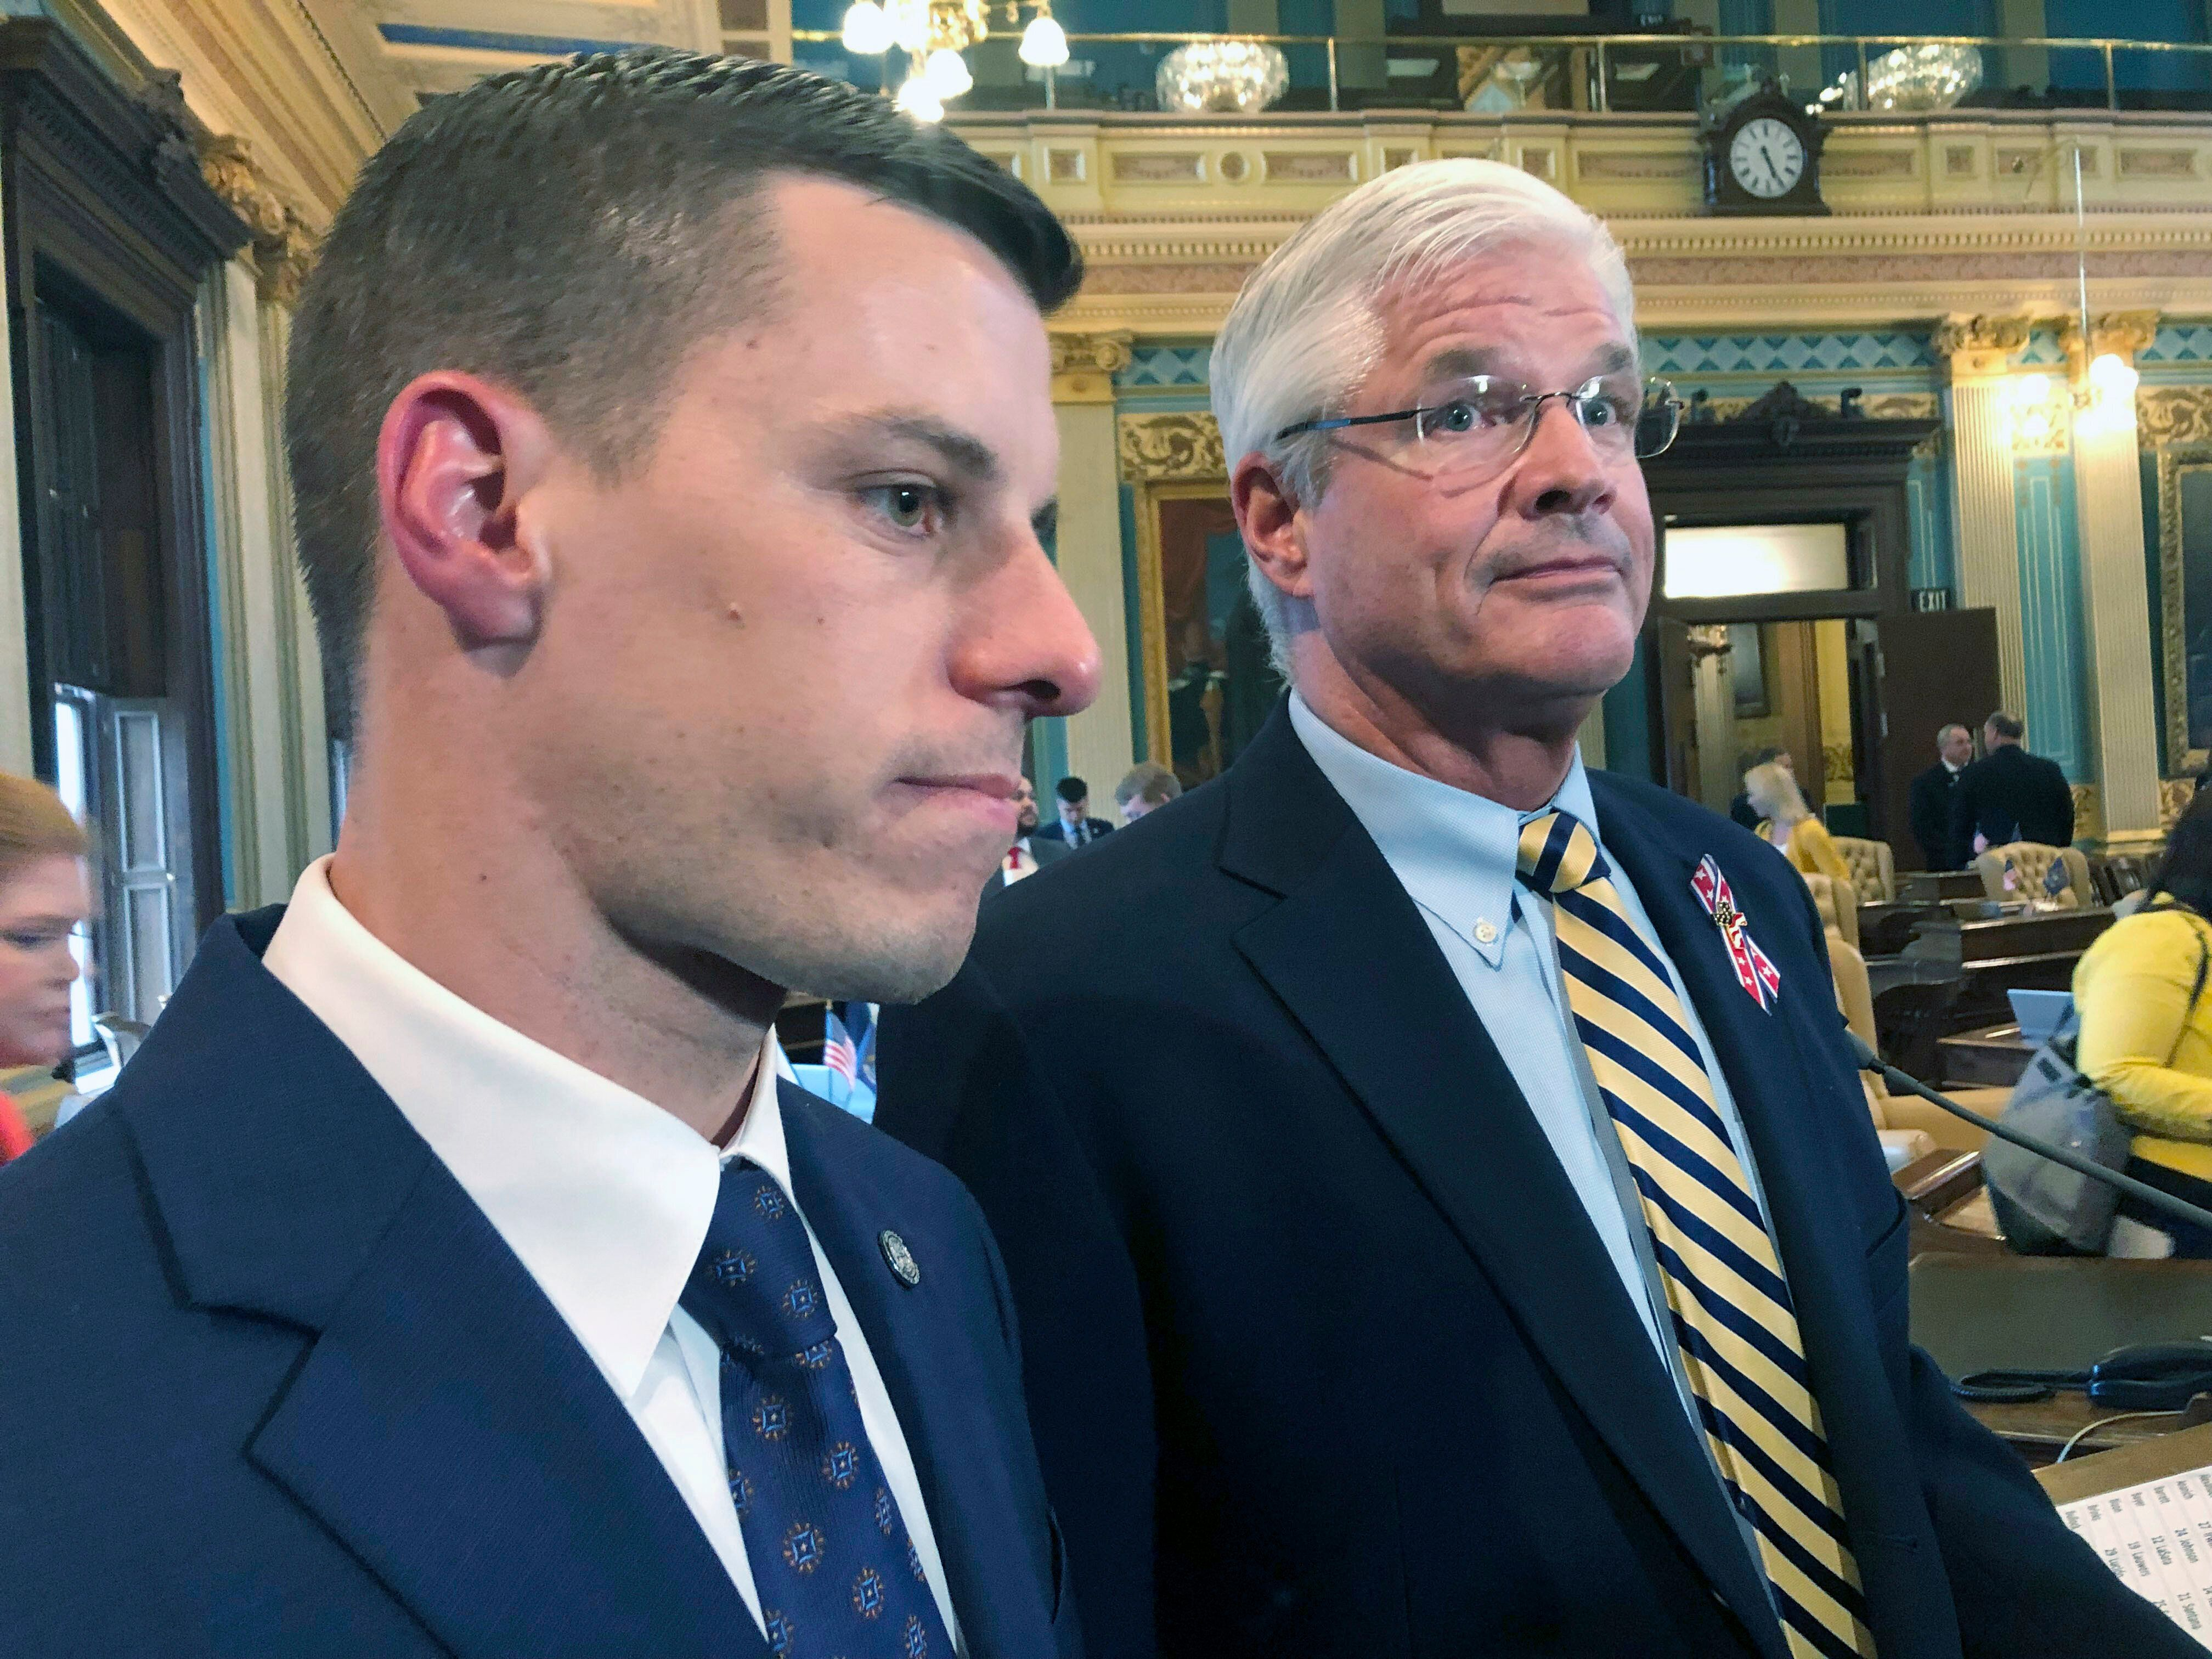 FILE - In this May 24, 2019 file photo, Republican House Speaker Lee Chatfield, left, and Republican Senate Majority Leader M